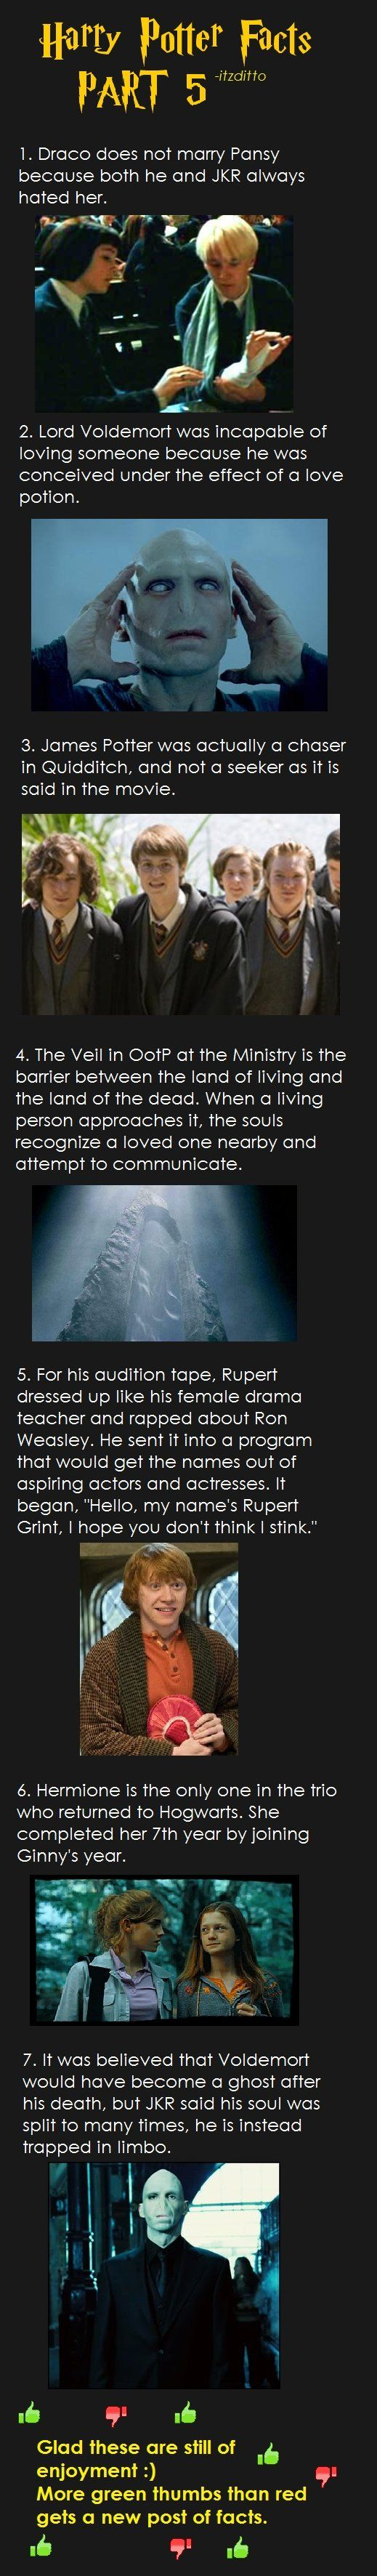 Harry Potter Facts Part 5 - Imgur